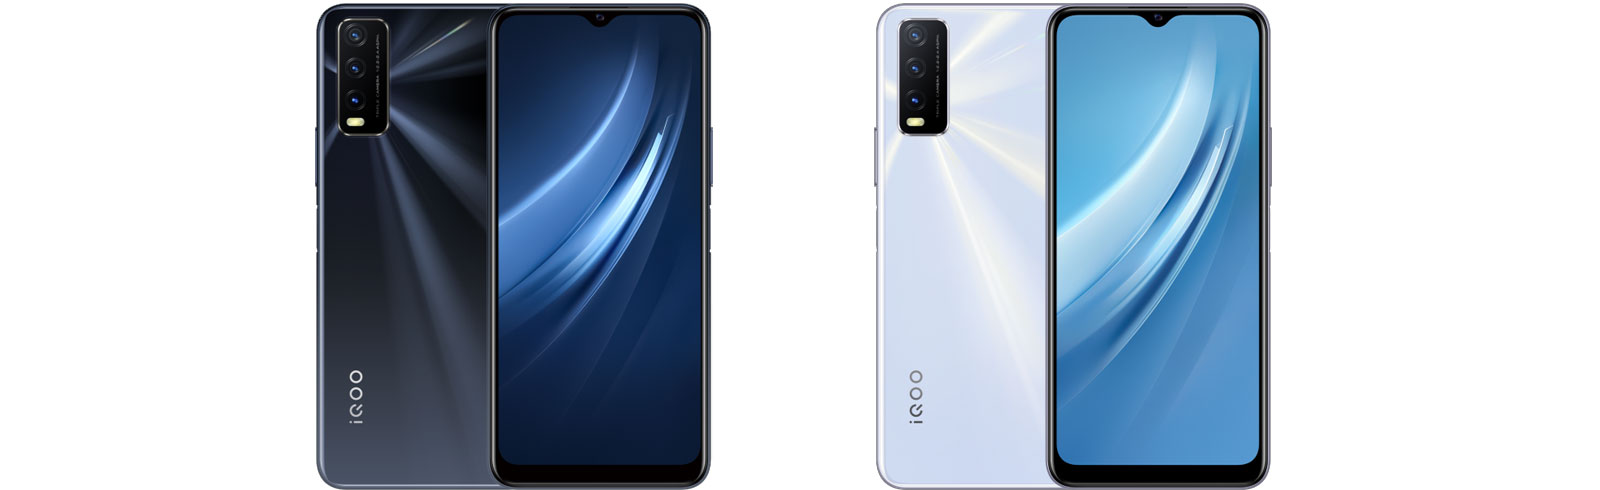 Vivo launches the iQOO U1x - specifications and prices